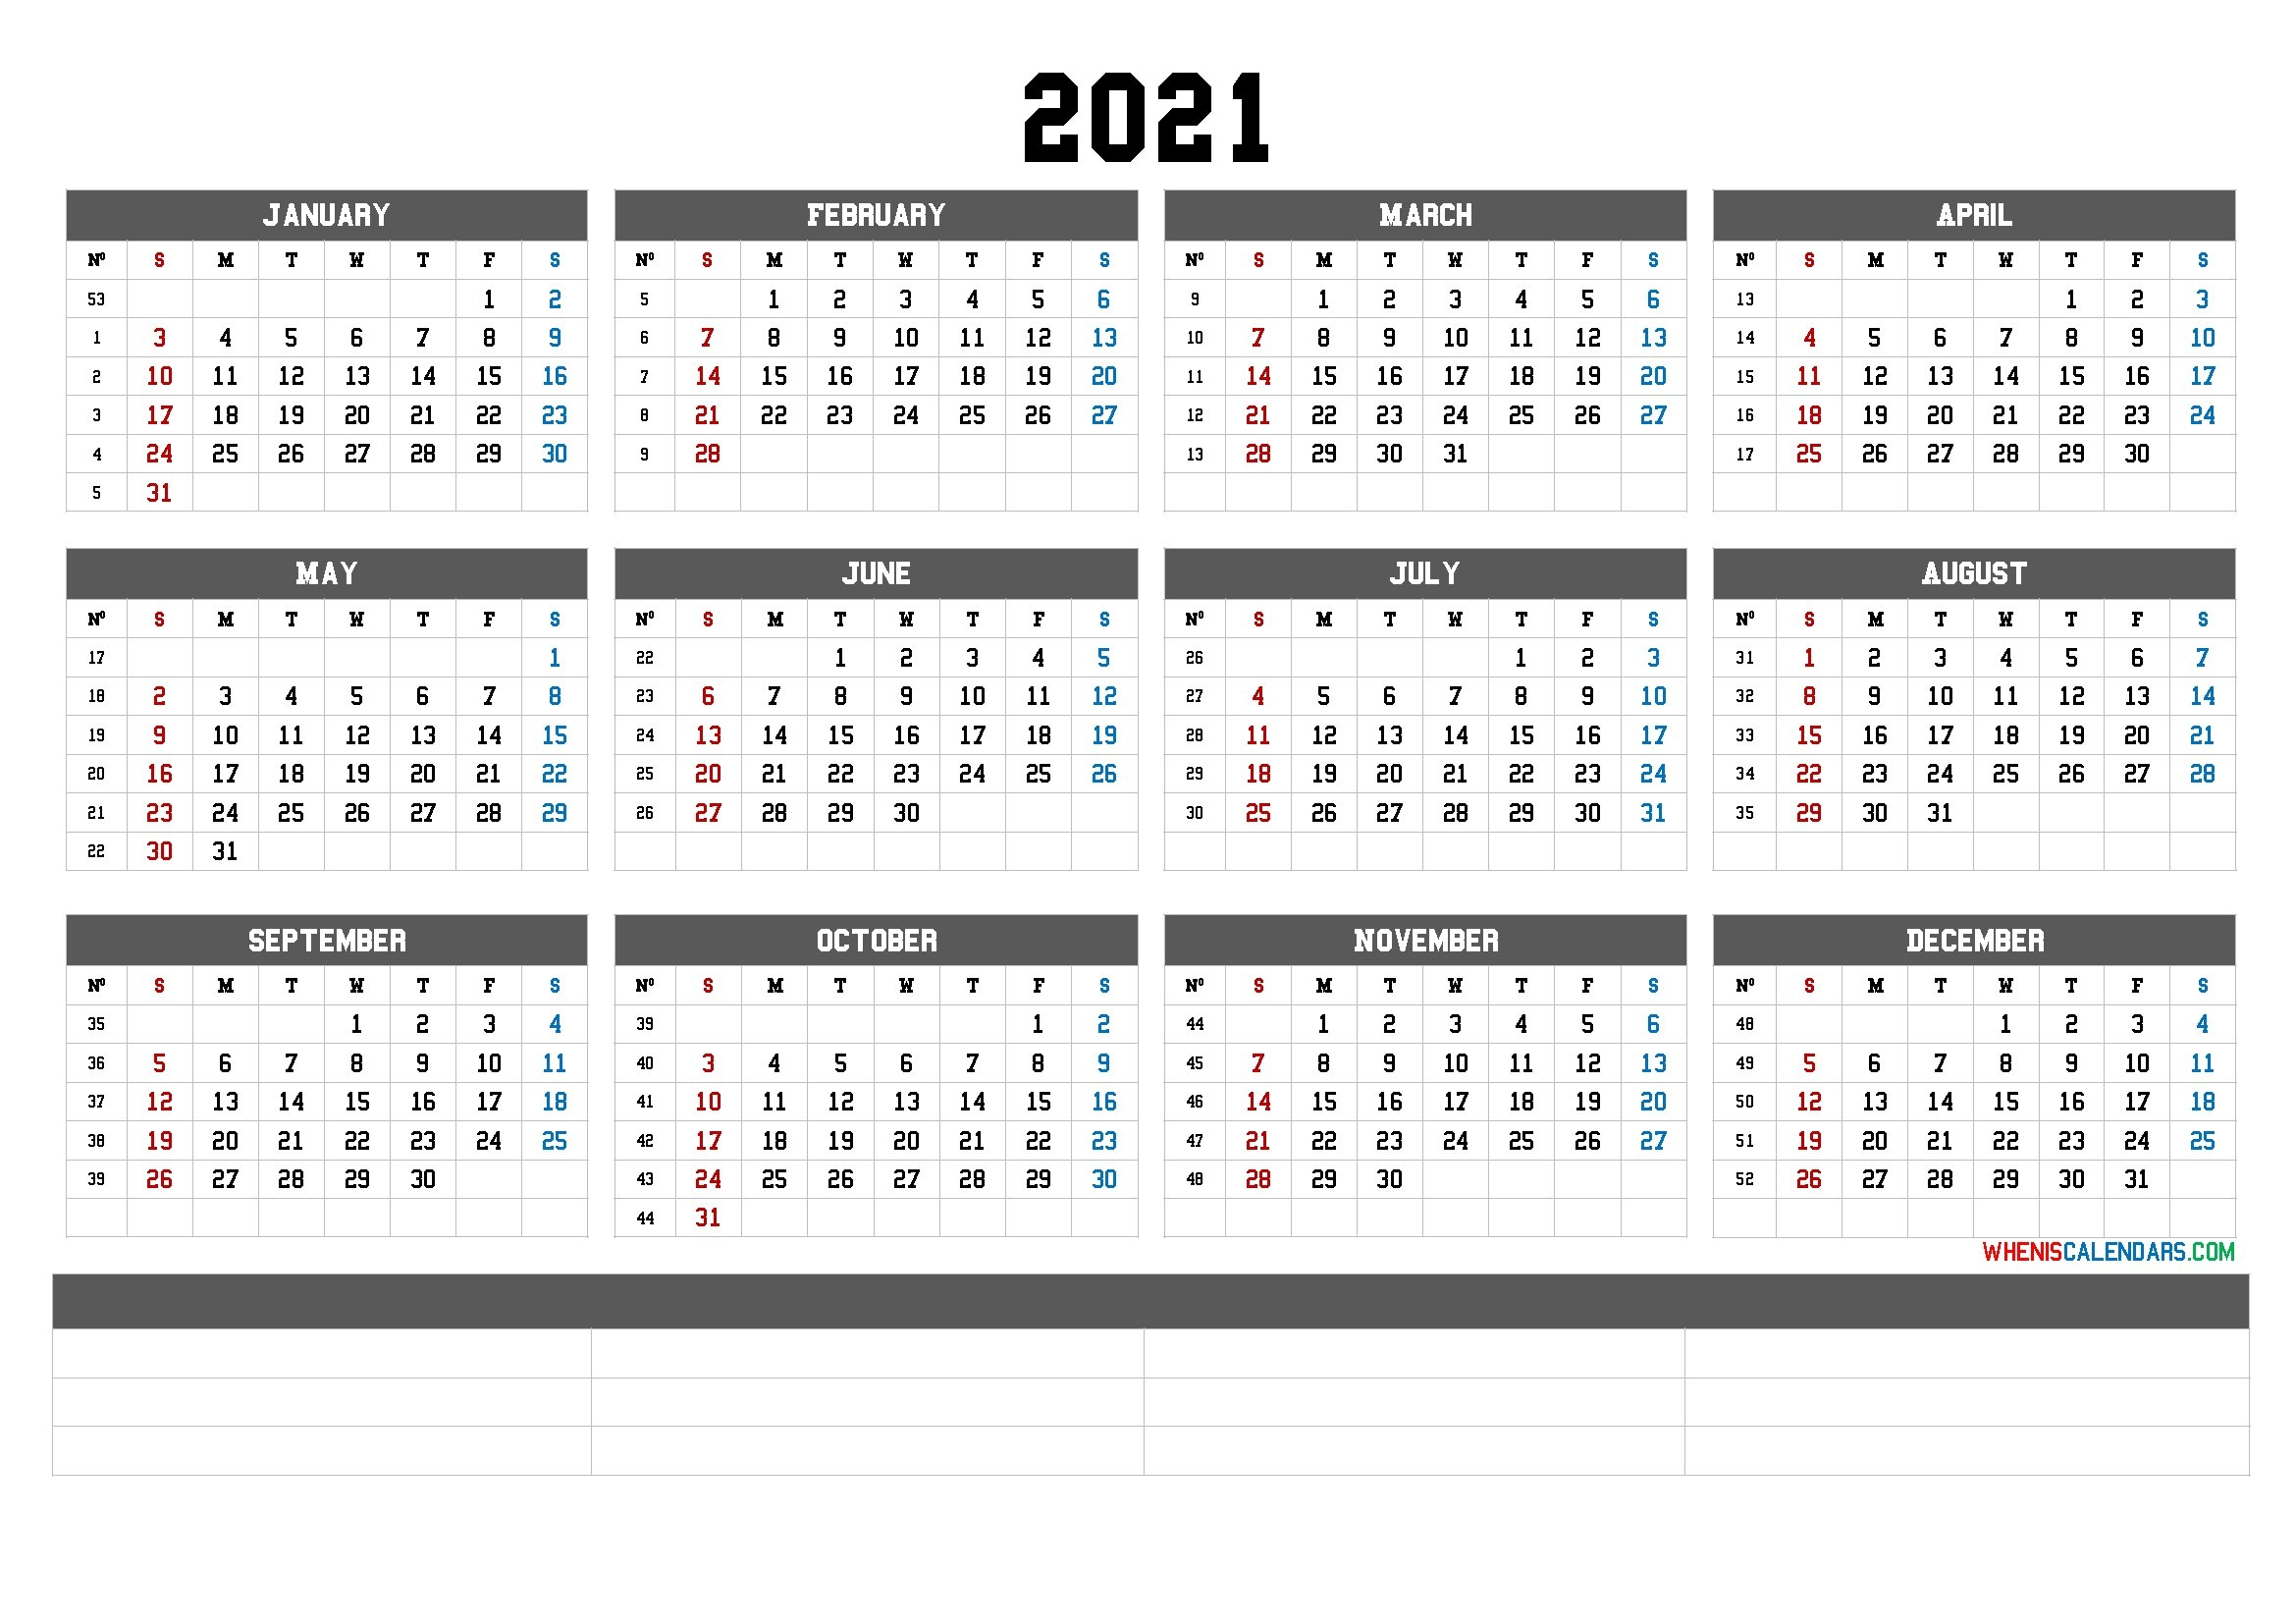 Printable 2021 Yearly Calendar With Week Numbers - Calendraex within Calendar For Year 2021 With Weeks Numbered Graphics